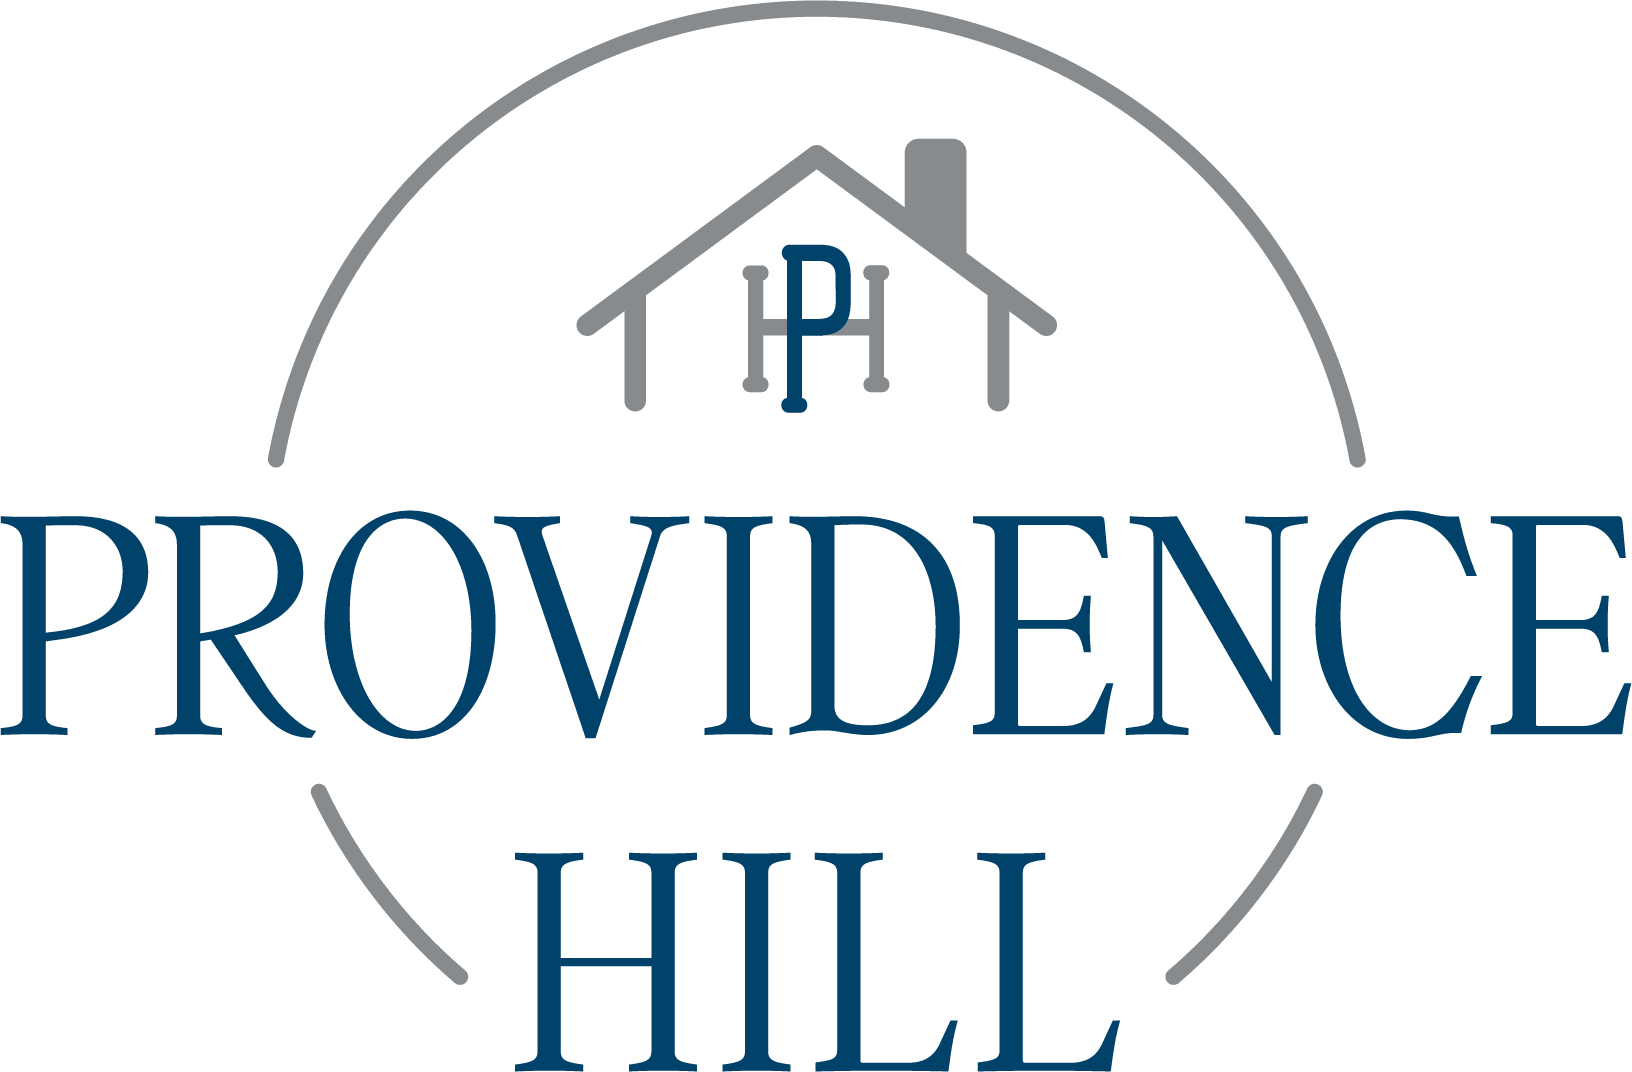 Providence Hill